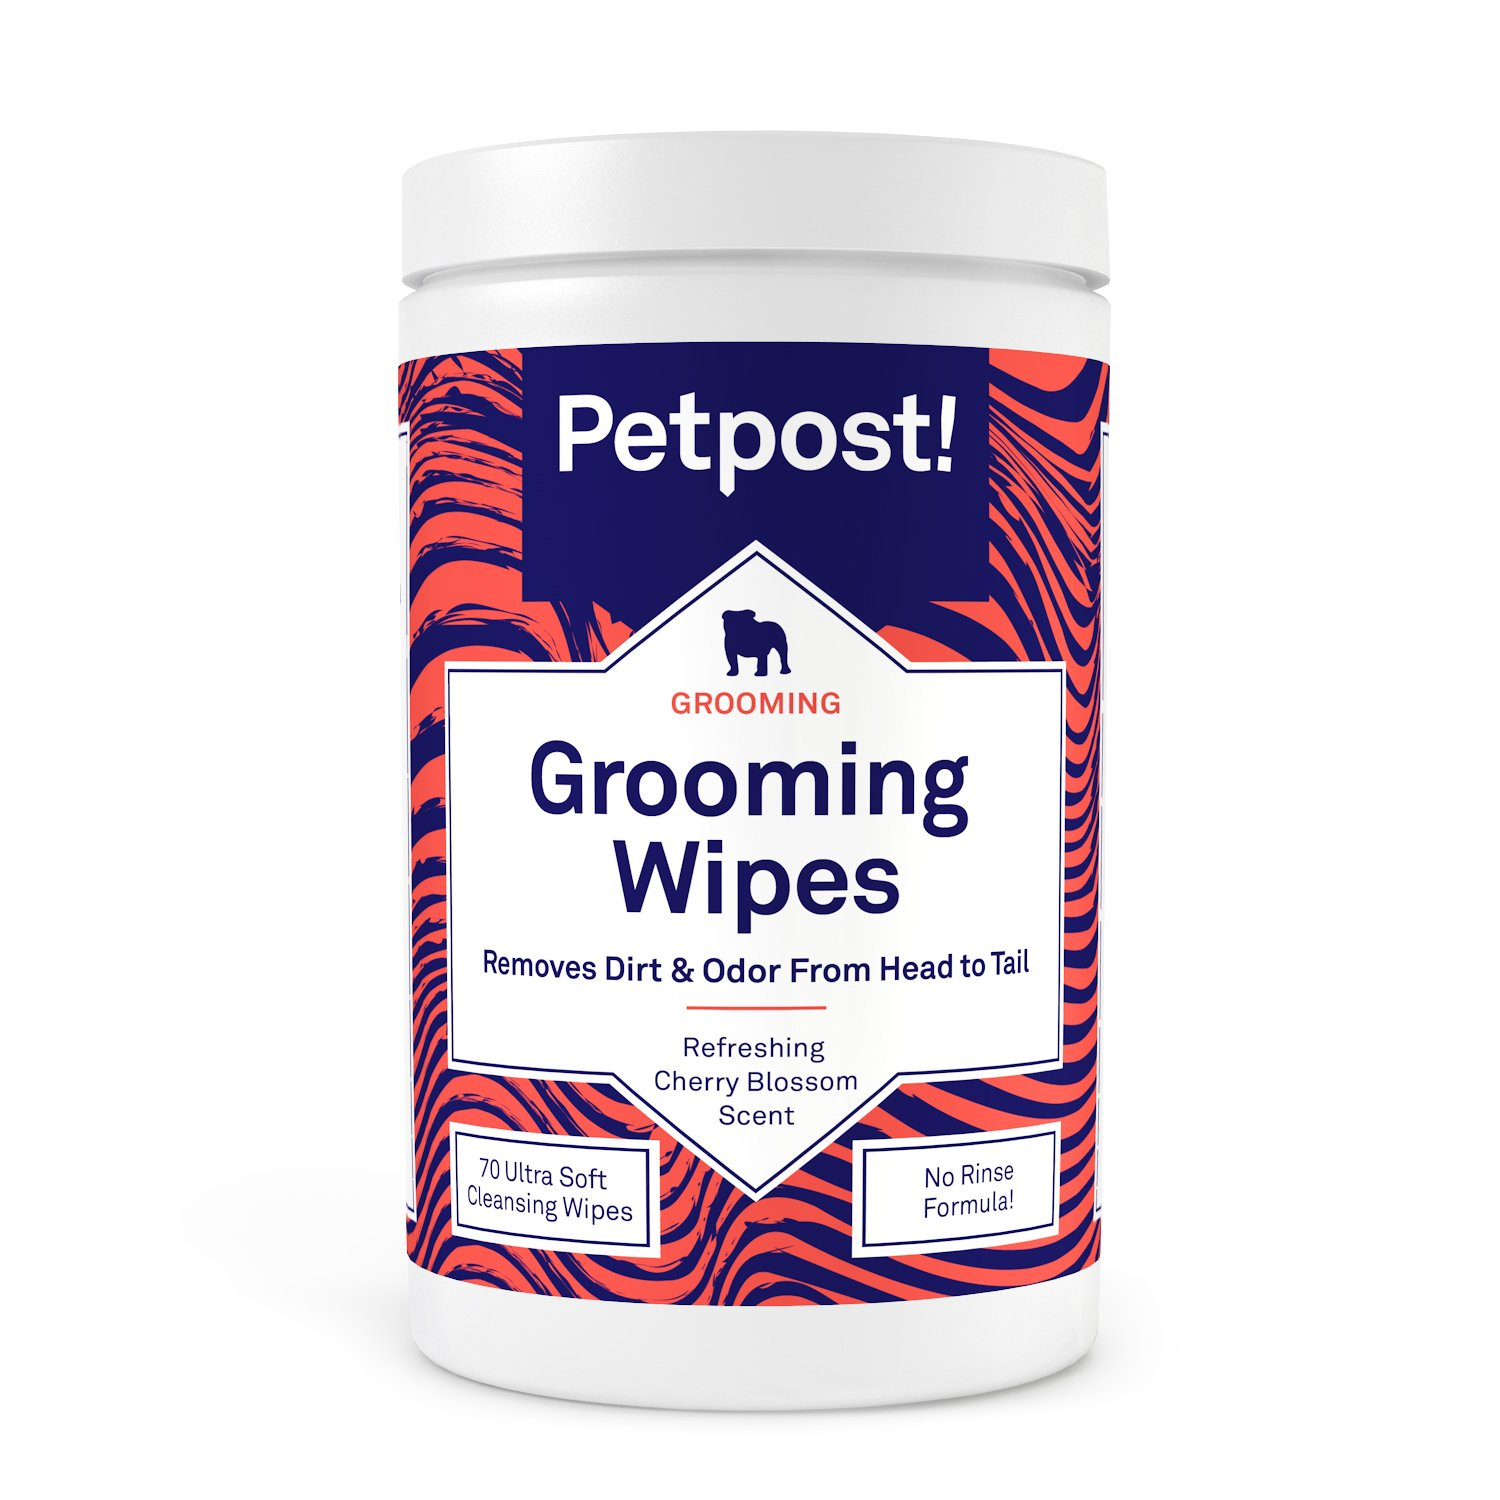 Petpost | Grooming Wipes for Dogs - Large, Deodorizing Wipes with Cherry Blossom Scent - 70 Ultra Soft Cotton Pads in Cleansing Solution (Cherry Blossom)